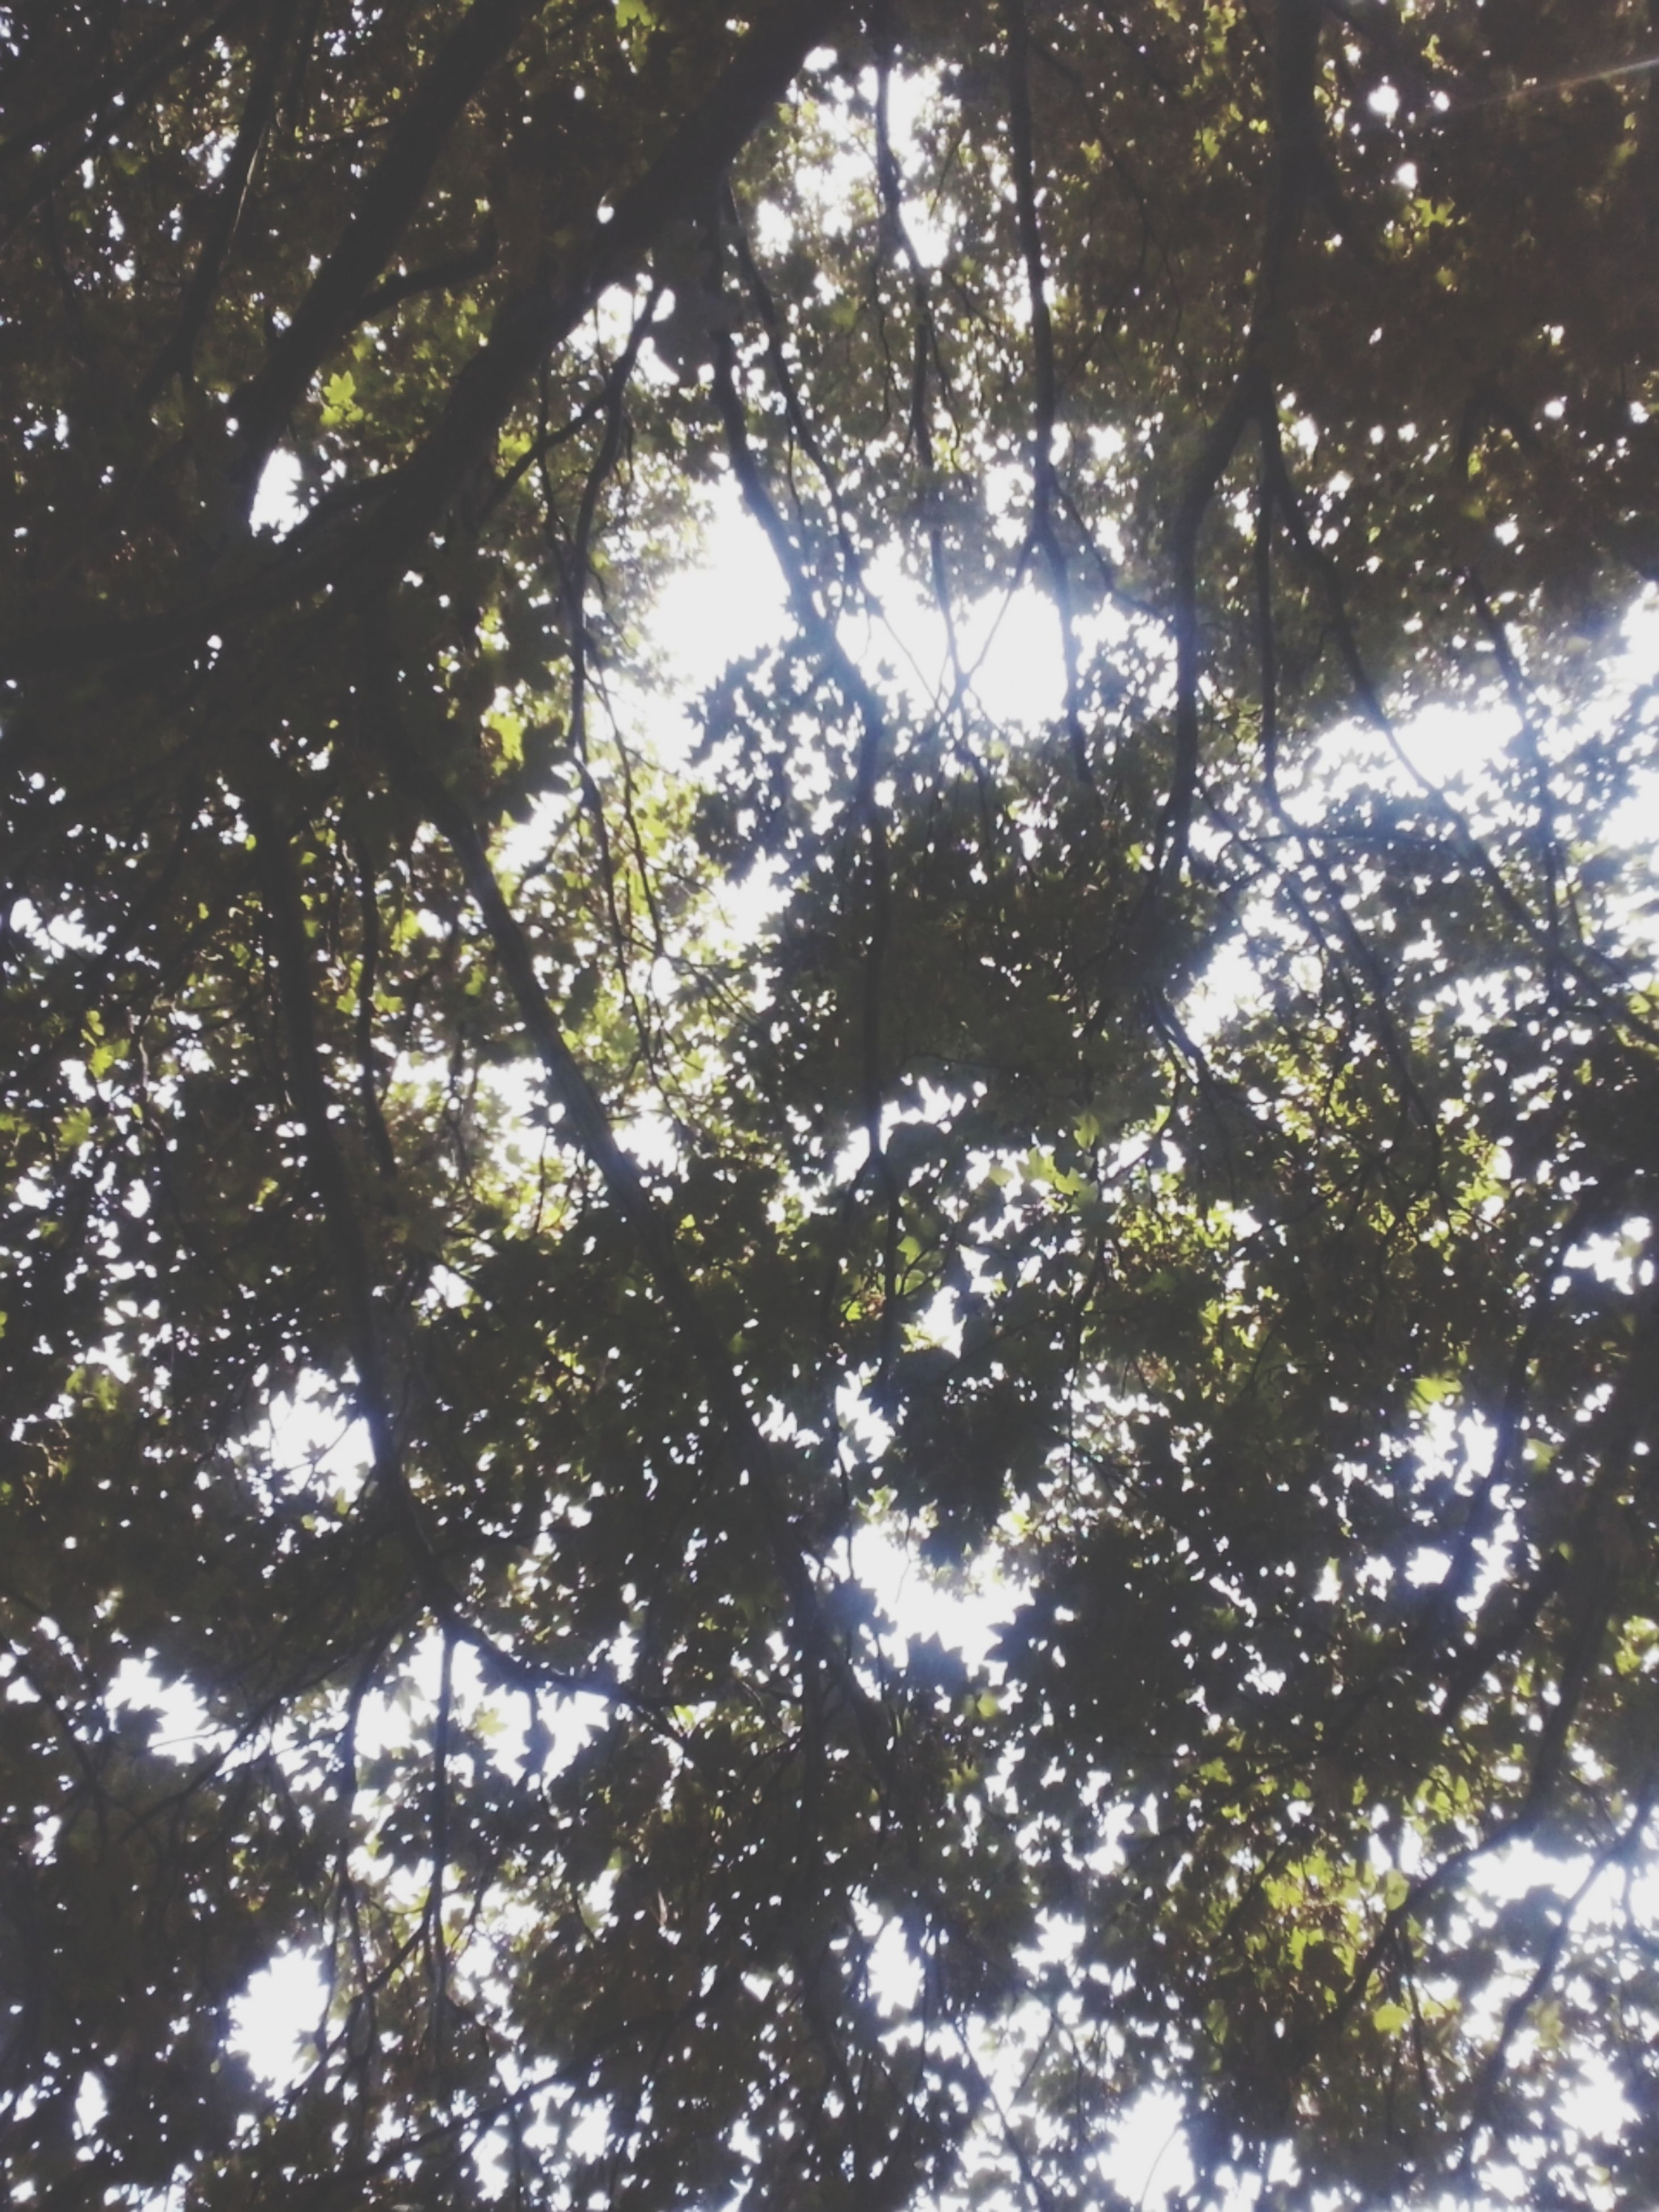 tree, low angle view, branch, growth, nature, tranquility, beauty in nature, sky, sunlight, green color, leaf, forest, directly below, day, backgrounds, outdoors, no people, full frame, scenics, tree trunk